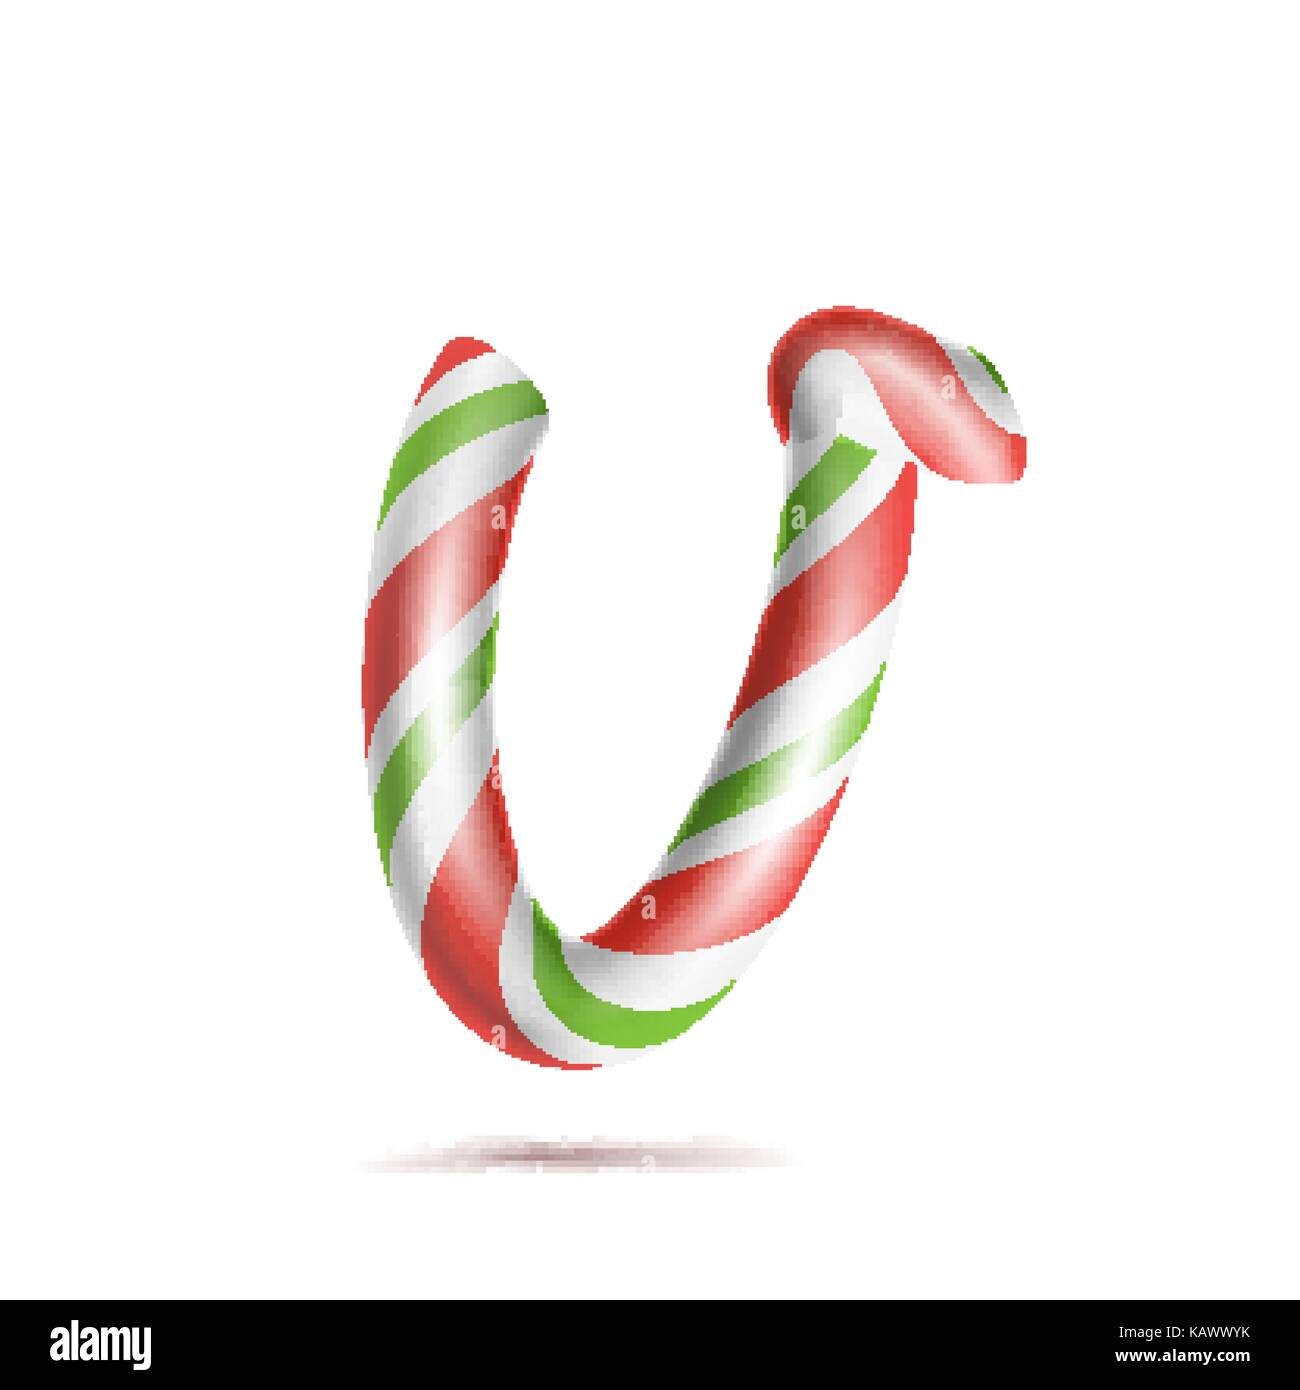 Christmas Candy Cane 3d Font Imágenes De Stock & Christmas Candy ...